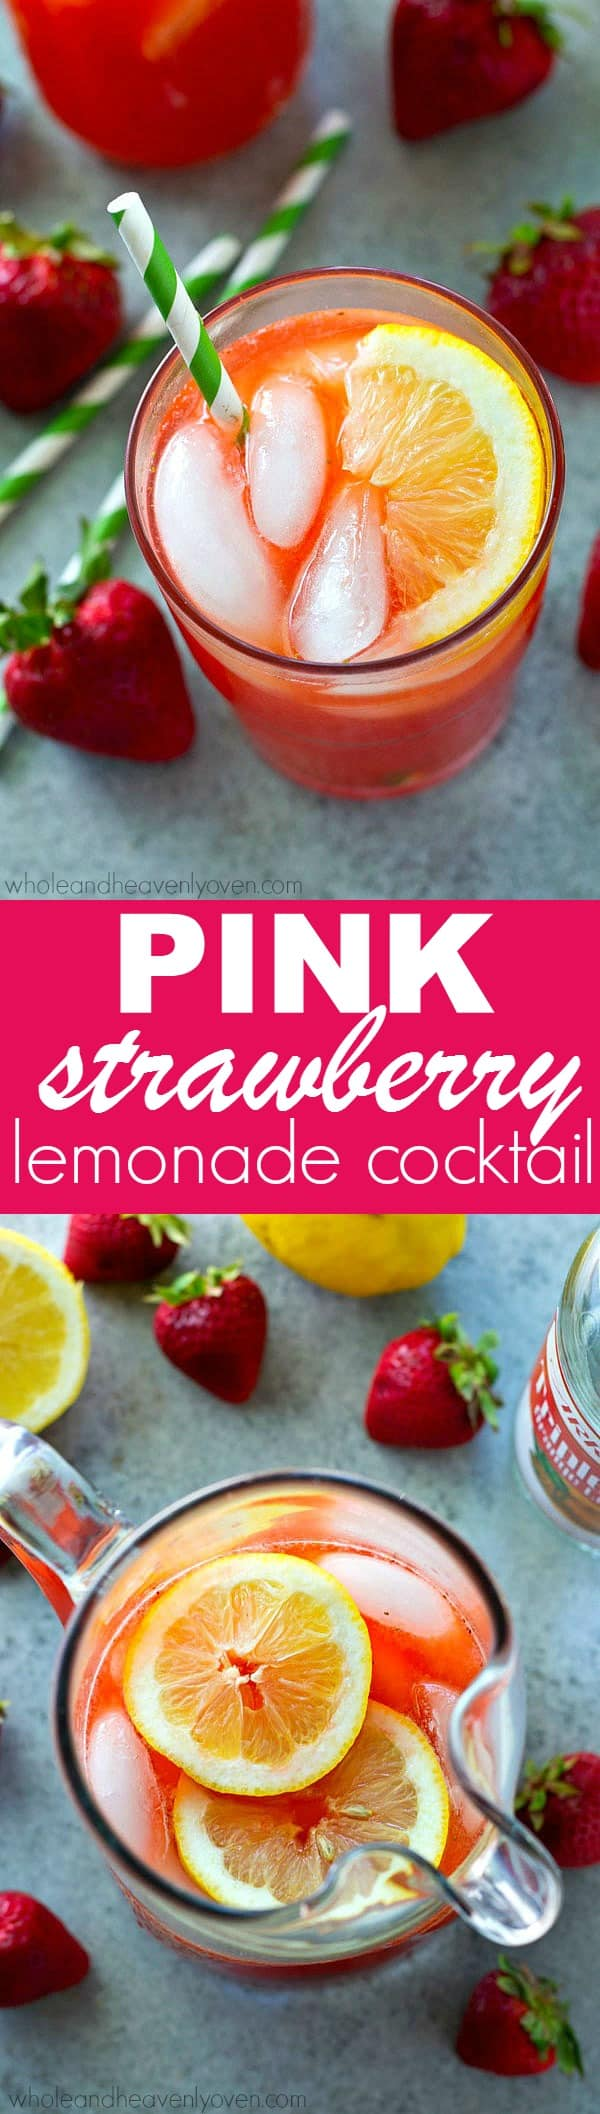 Classic pink strawberry lemonade with a fun boozy kick that you are absolutely going to love! This easy cocktail is a breeze to whip up and is quickly going to become your favorite summer sipper!